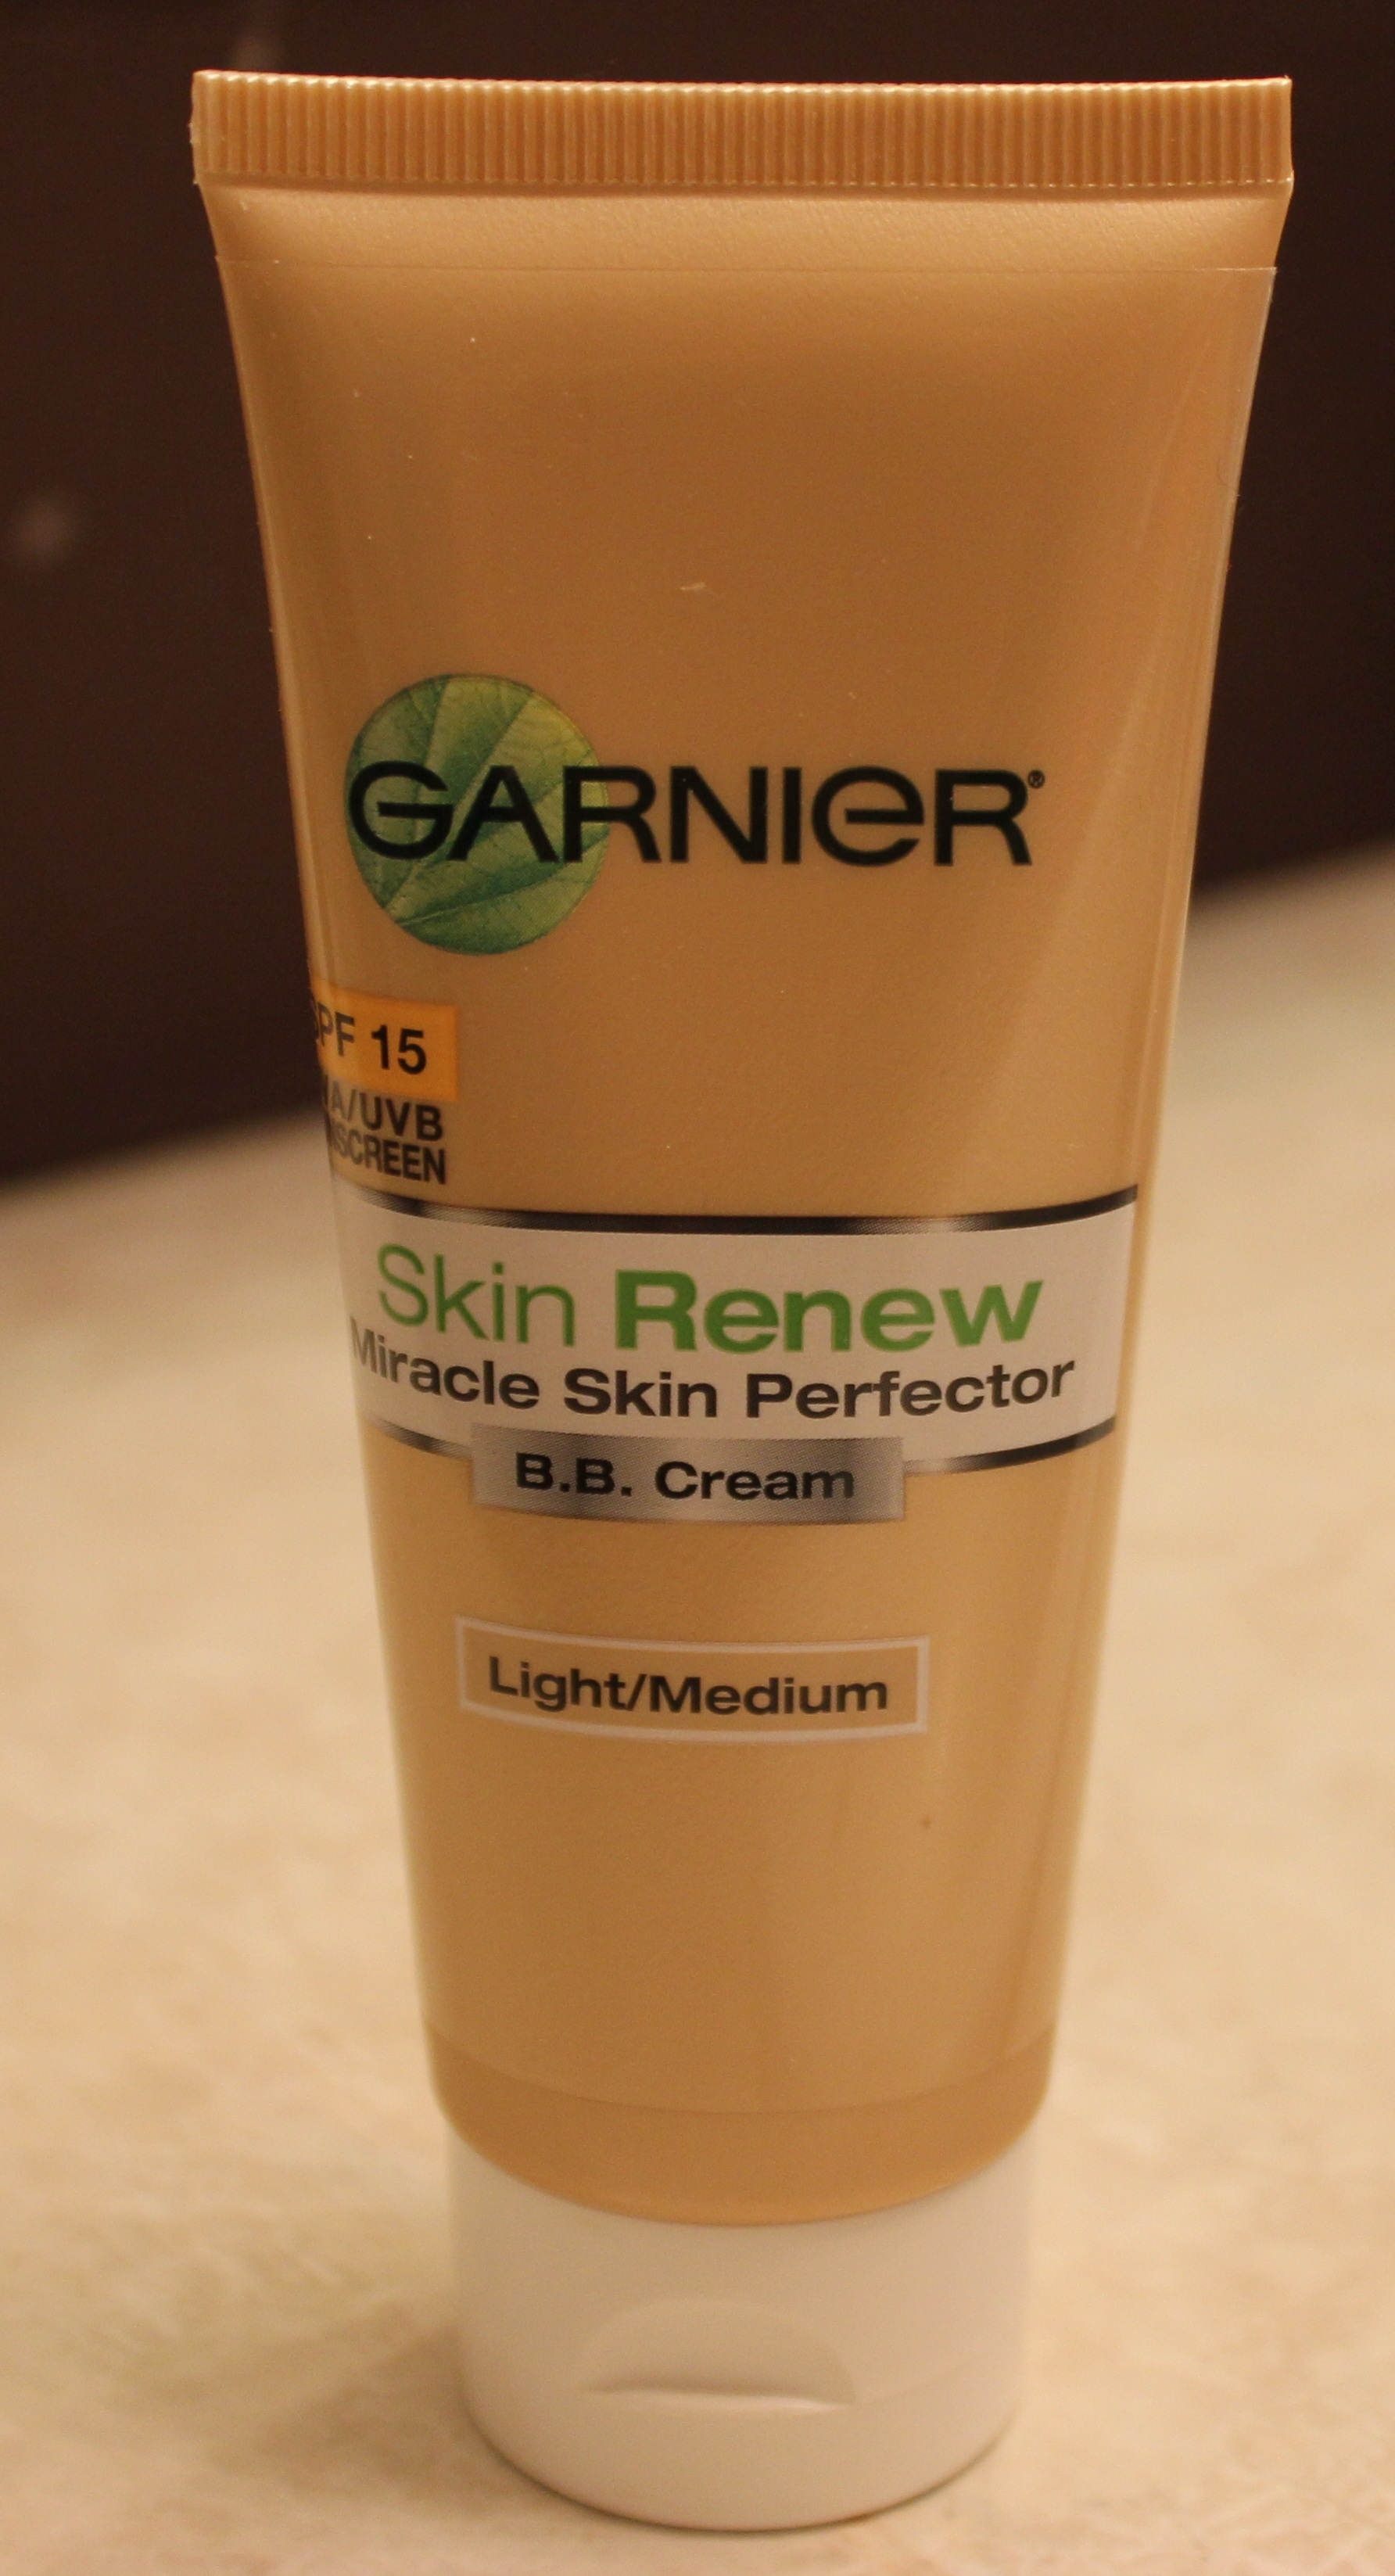 garnier bb cream review and pictures for light medium confidentbeauty